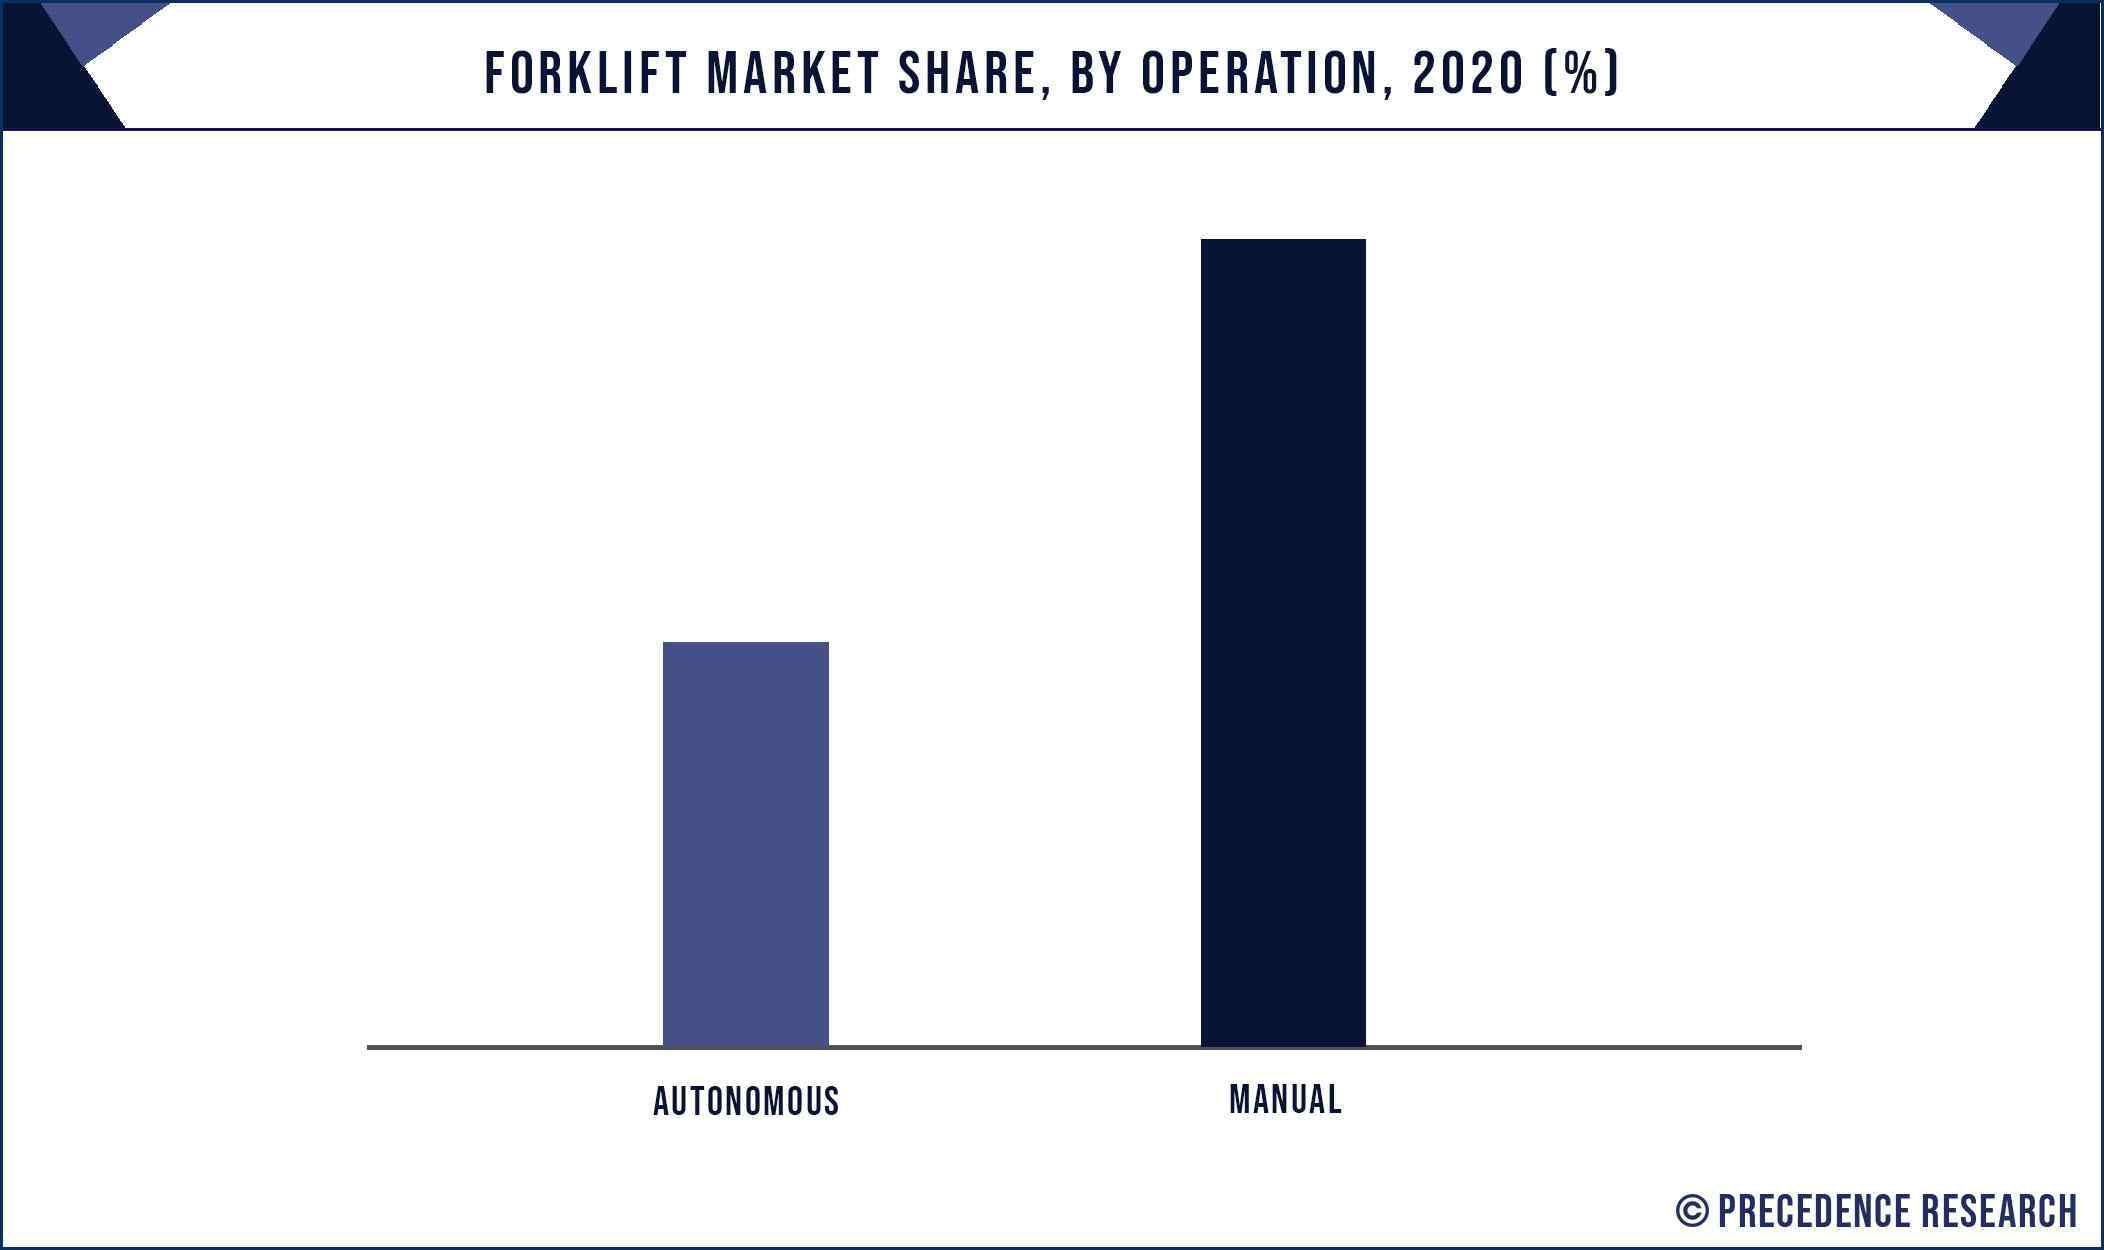 Forklift Market Share, By Operation, 2020 (%)